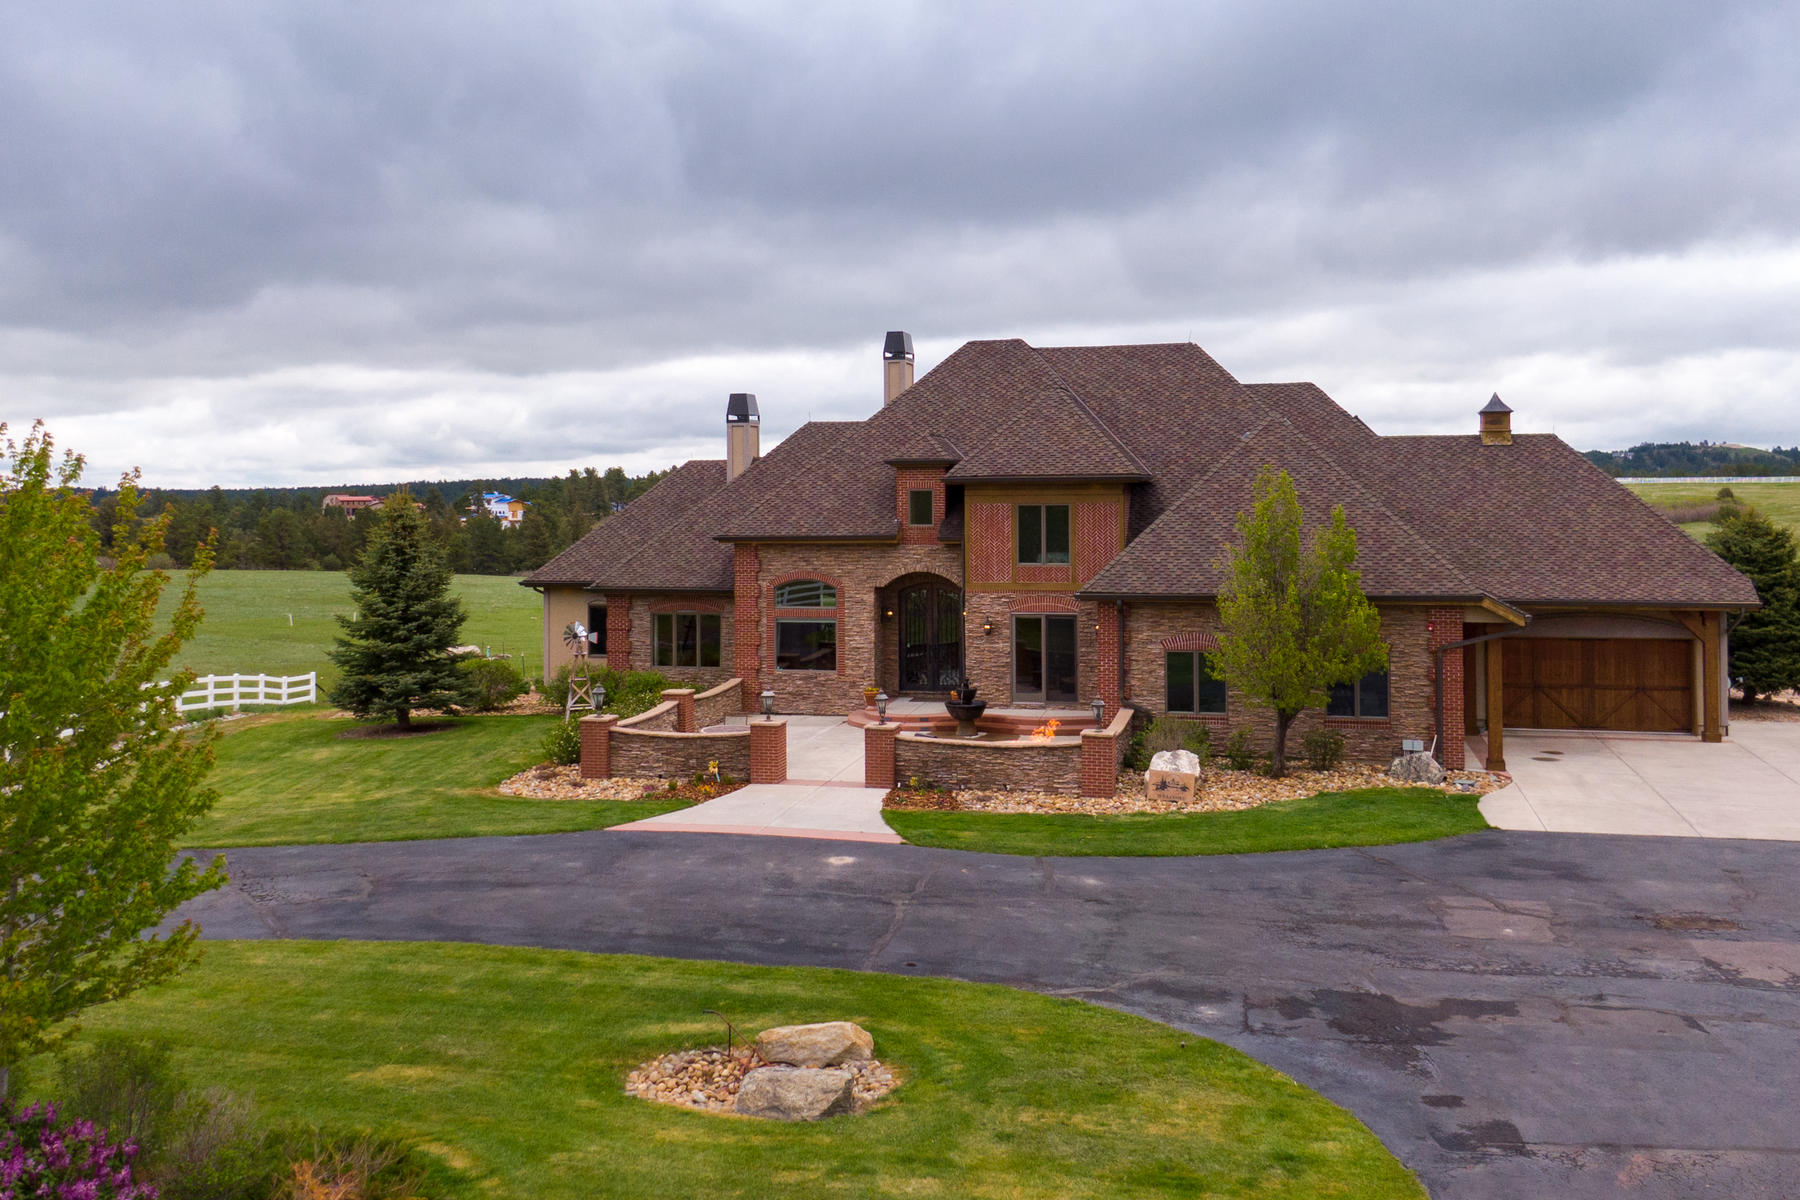 Single Family Homes for Sale at This custom estate sits on 35 wide-open acres and boasts spectacular views! 9415 Arabian Run Franktown, Colorado 80116 United States